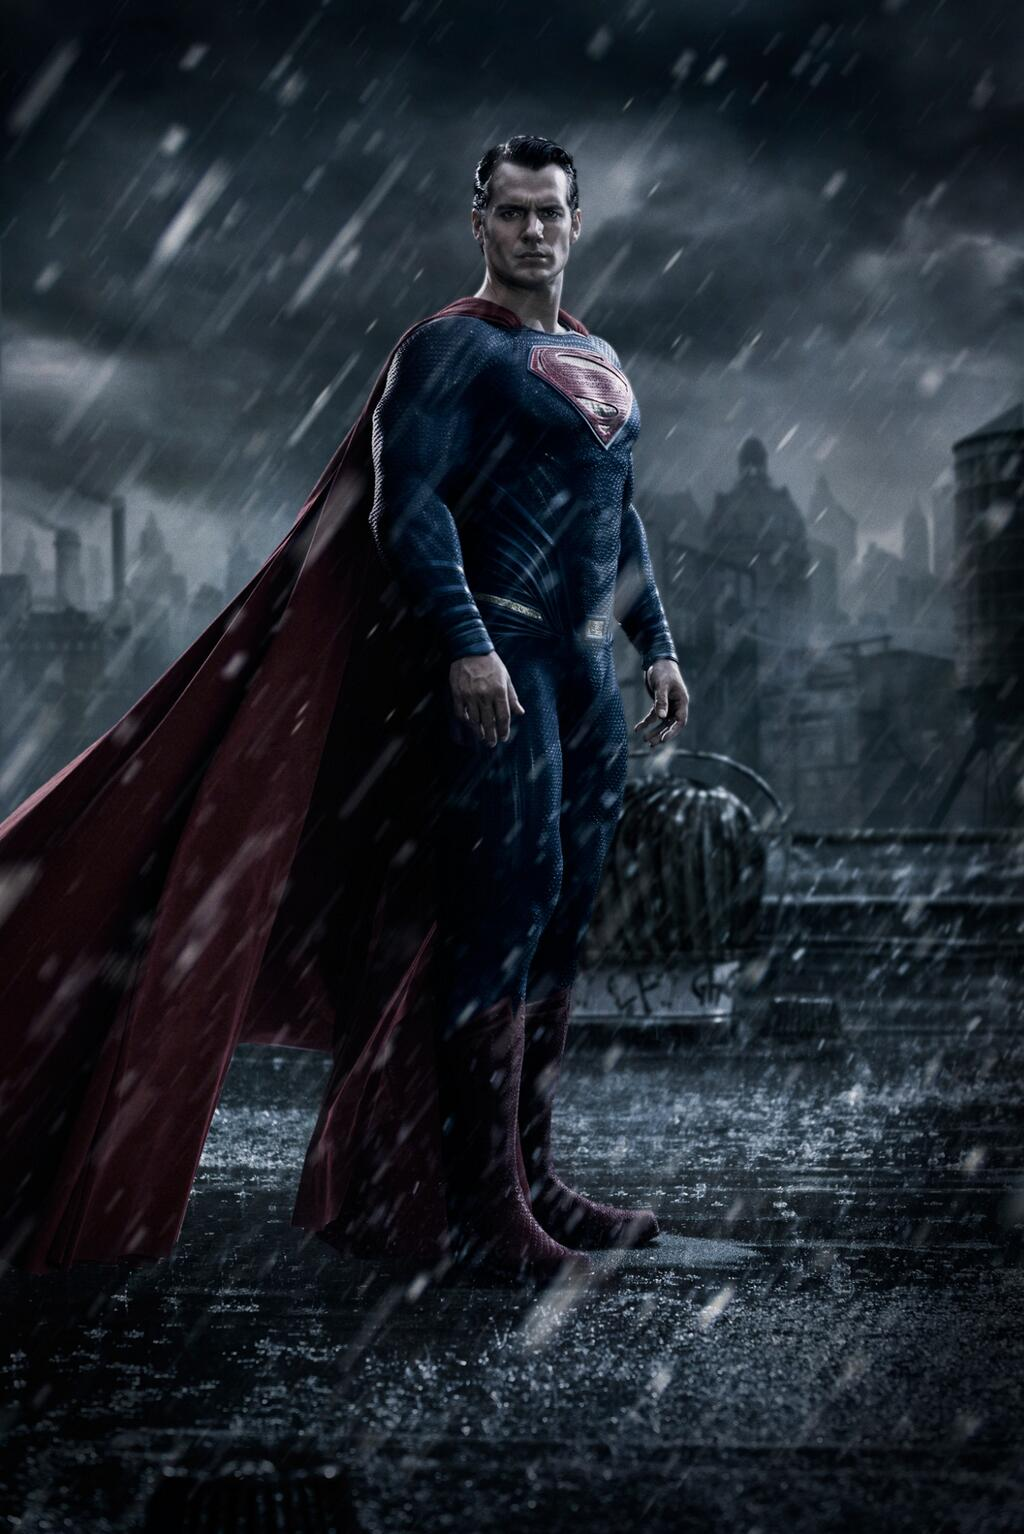 This is Henry Cavill as the Man of Steel in 'Batman v. Superman'